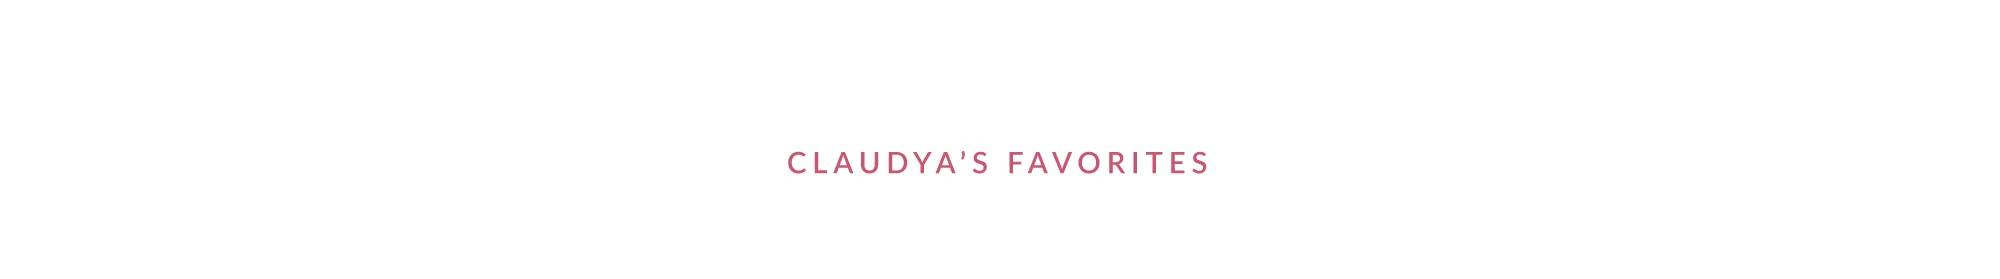 Claudya's Favorites